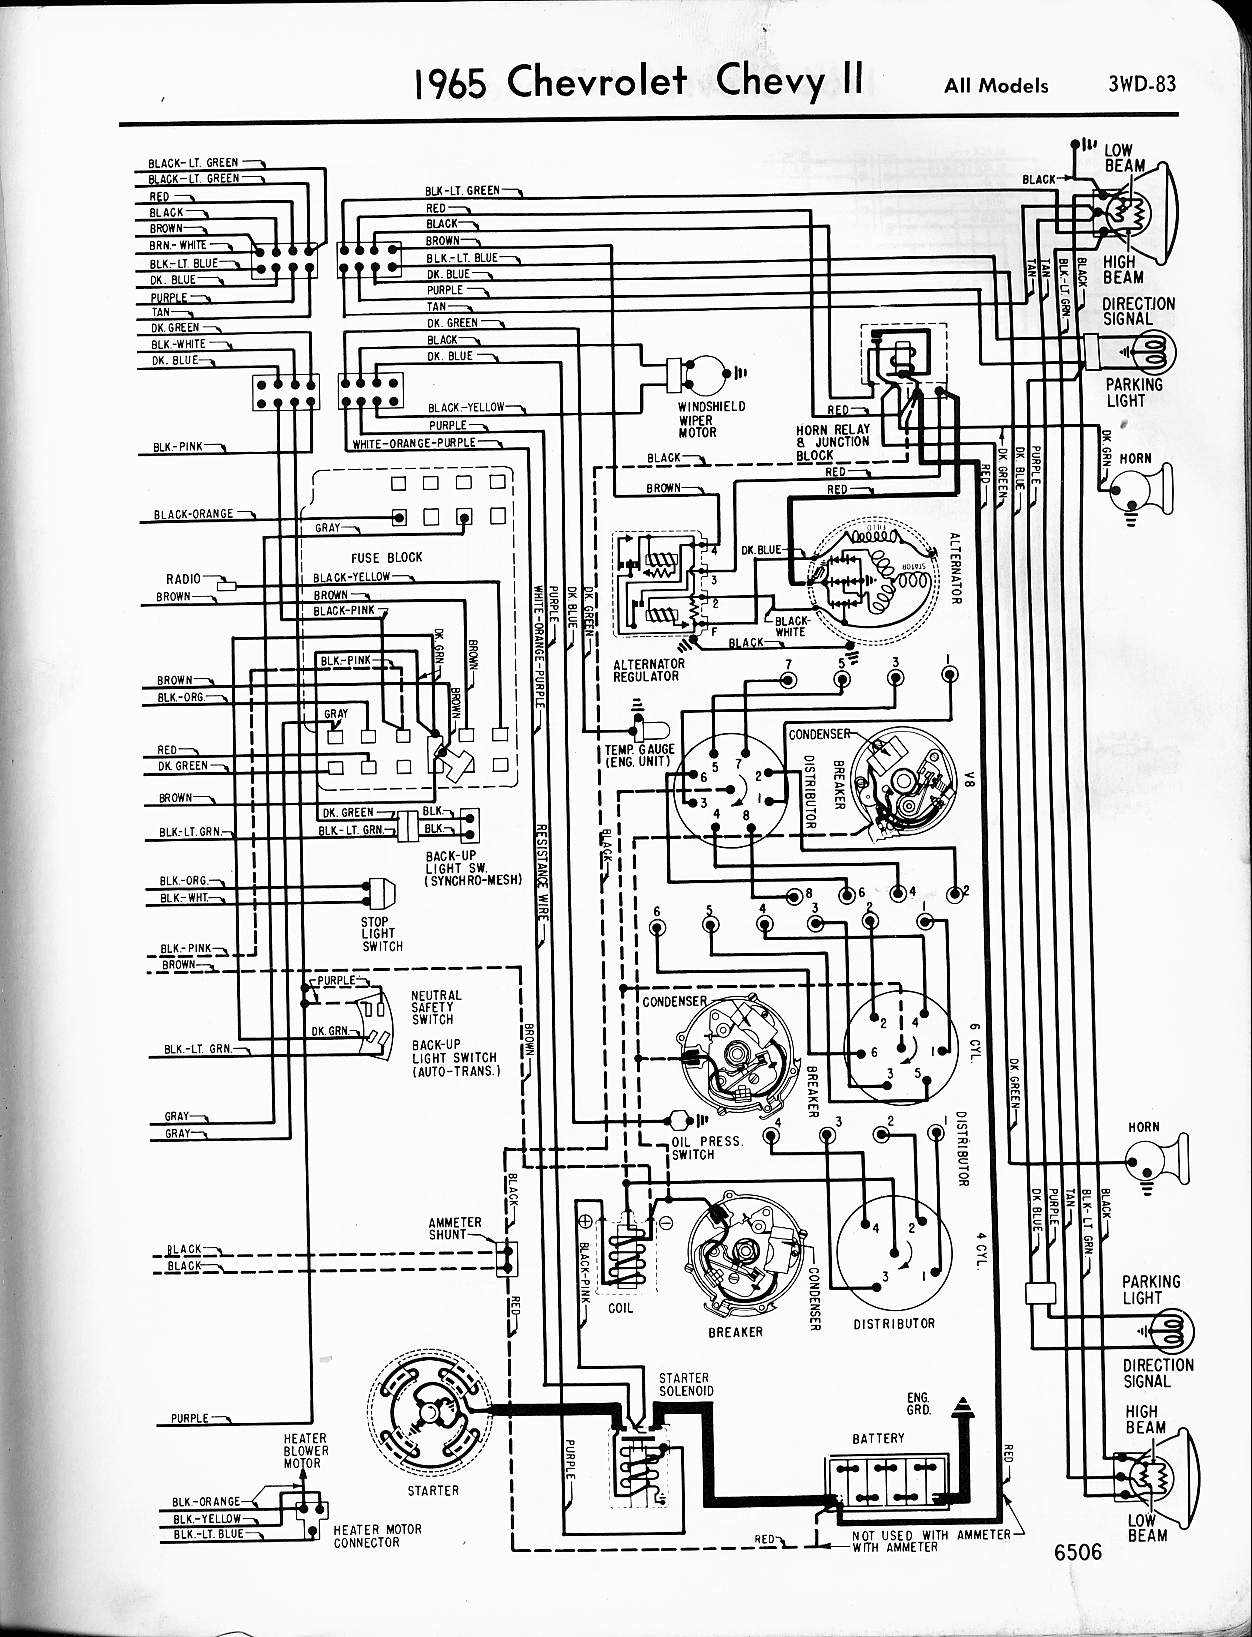 MWireChev65_3WD 083 57 65 chevy wiring diagrams 65 chevy truck wiring diagram at alyssarenee.co